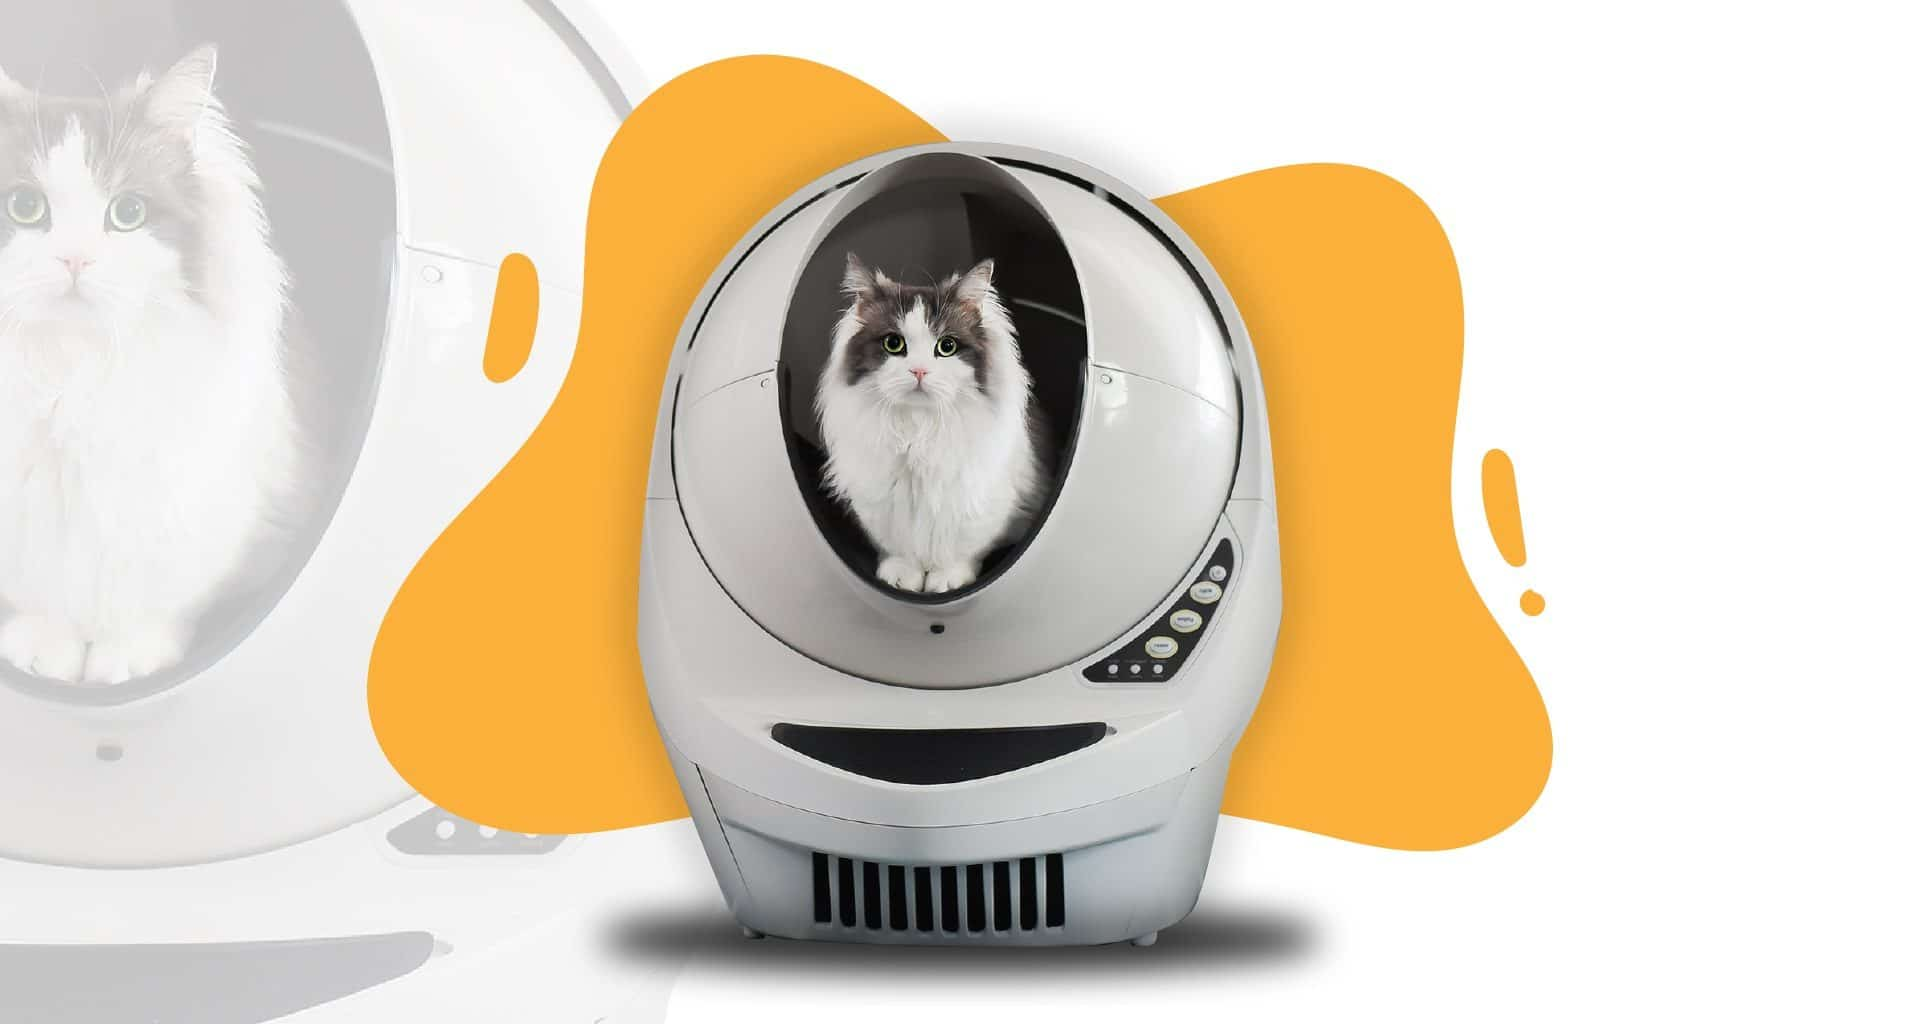 Best Self Cleaning Litter Box - Feature Image